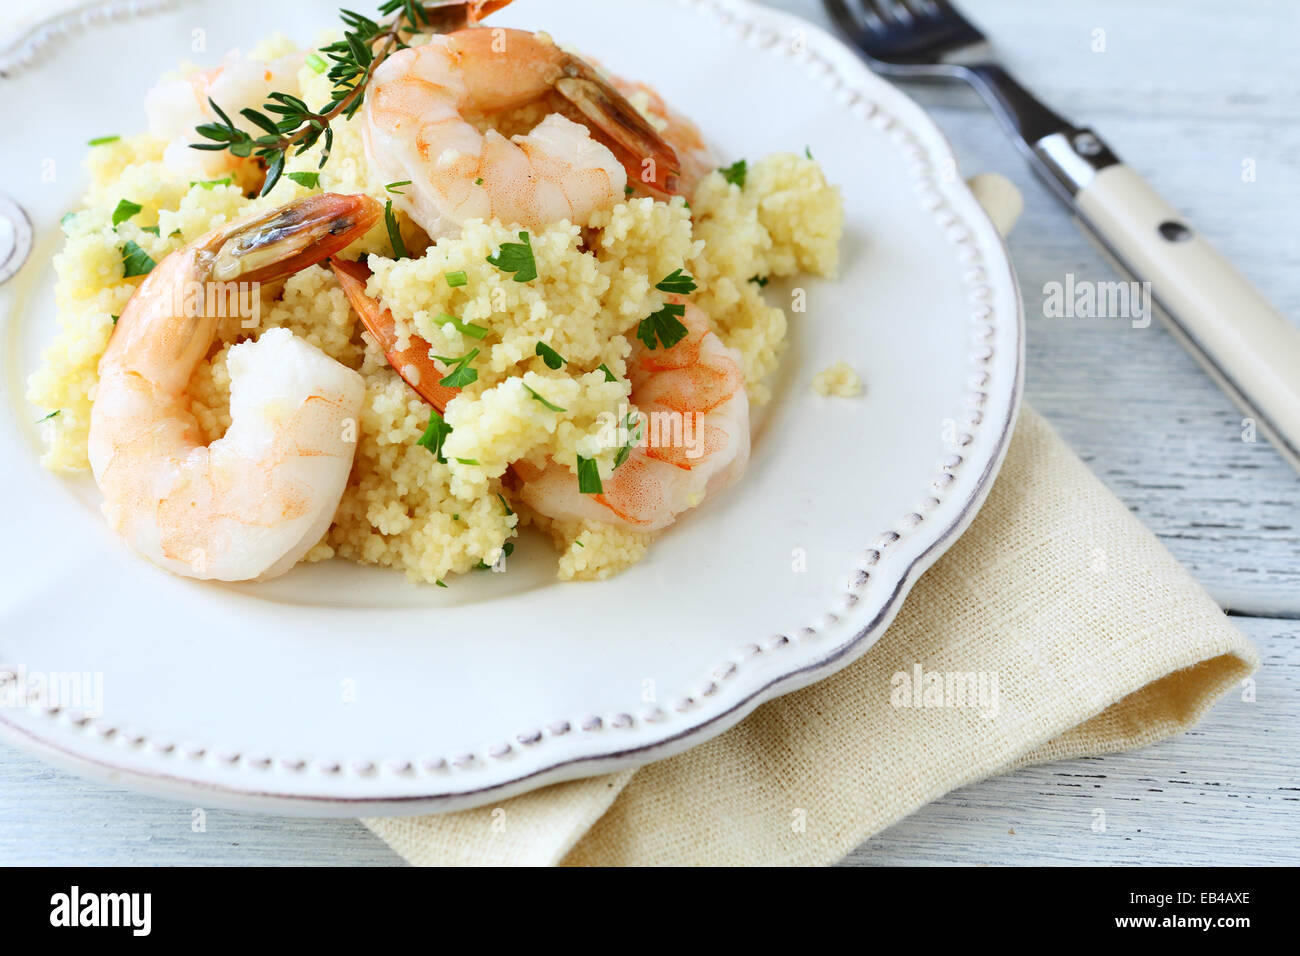 Delicious couscous with shrimp and parsley on the plate, food closeup - Stock Image